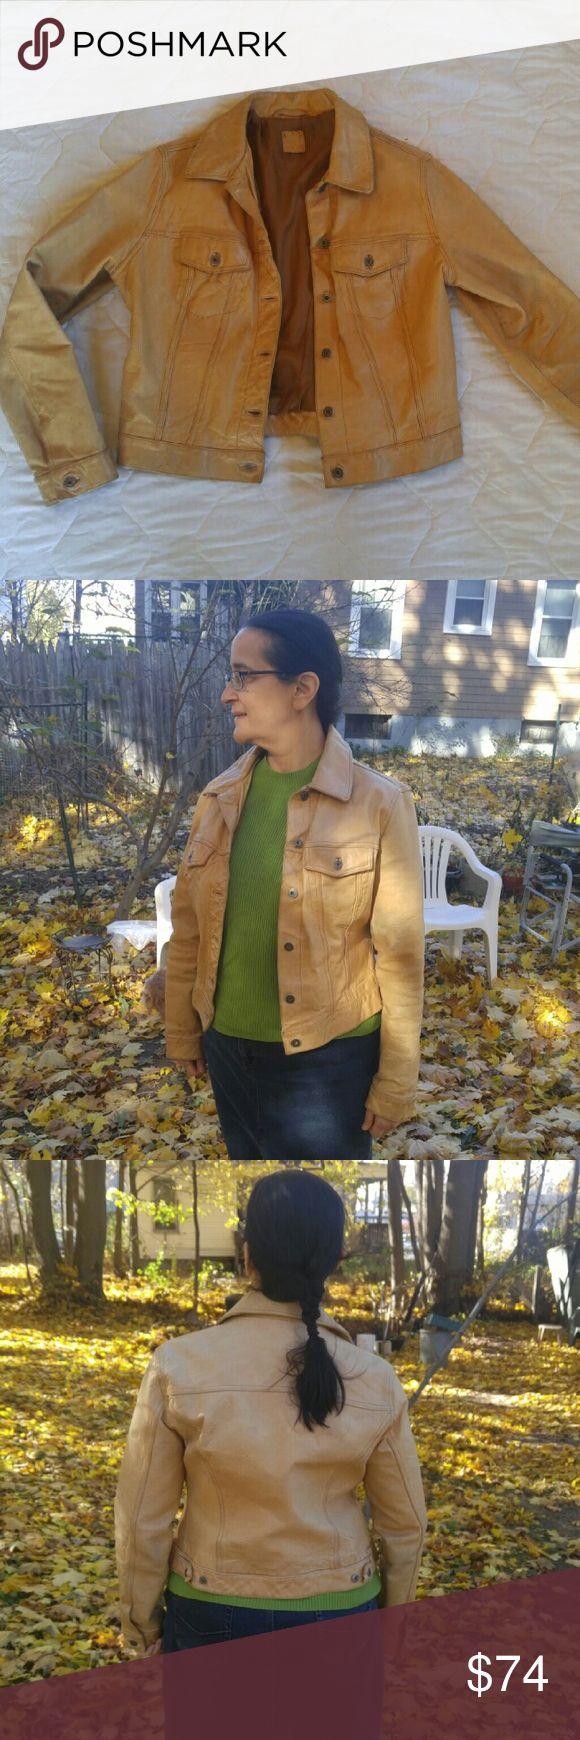 Vintage yellow leather Gap jacket Vintage Gap motorcycle Jacket. Genuine leather. Fully lined. Two breast pockets with buttons. Fits like medium. GAP Jackets & Coats